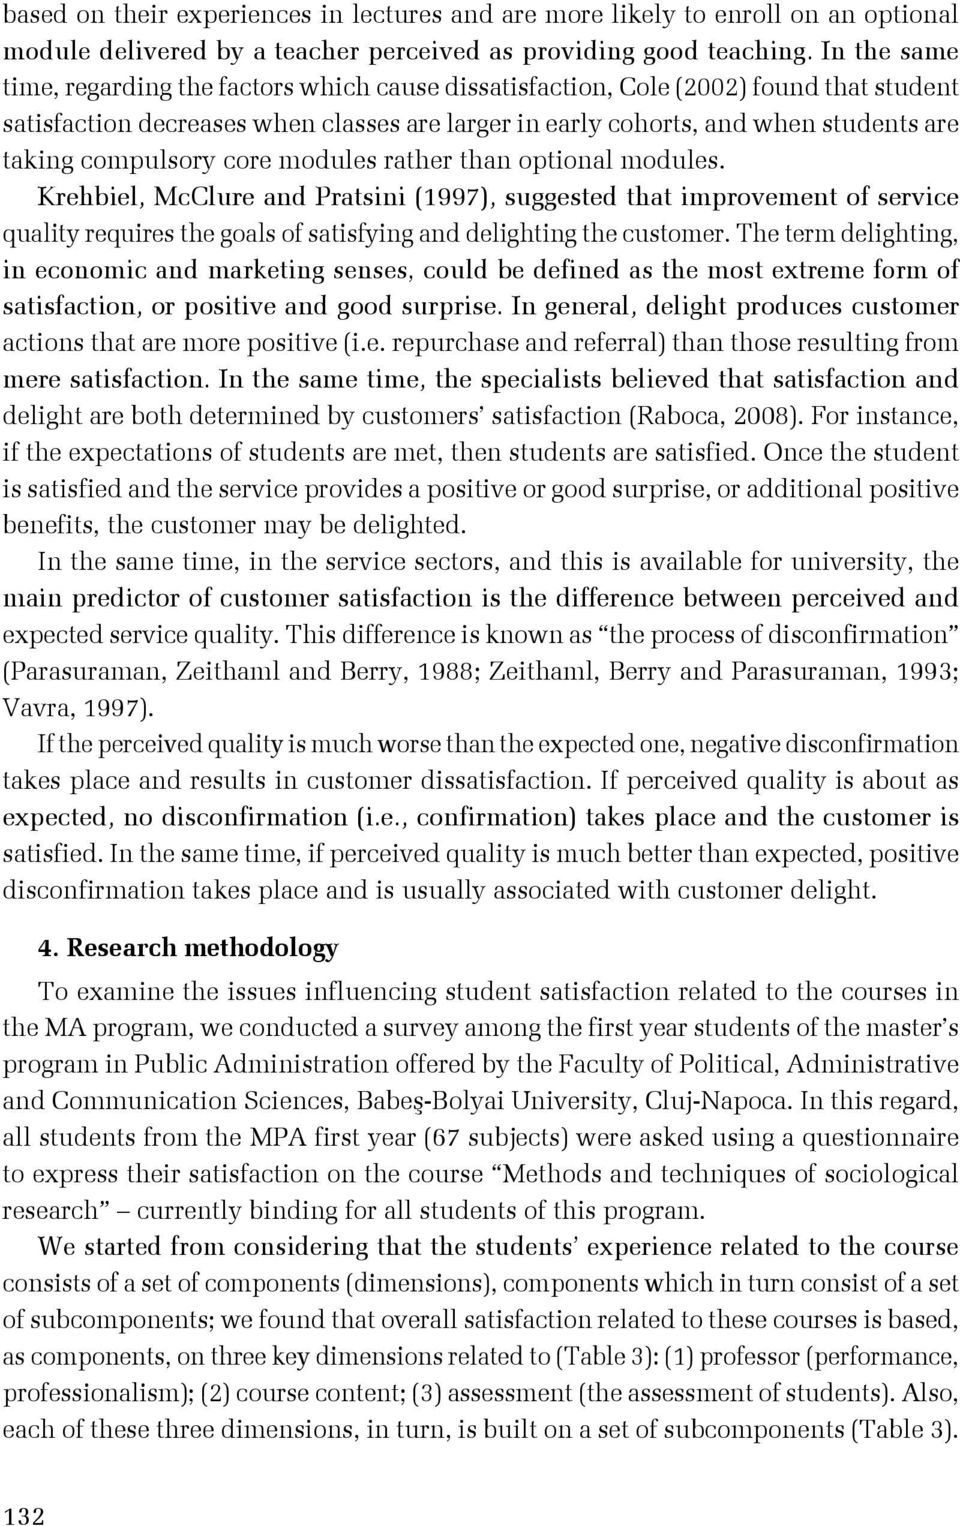 compulsory core modules rather than optional modules. Krehbiel, McClure and Pratsini (1997), suggested that improvement of service quality requires the goals of satisfying and delighting the customer.